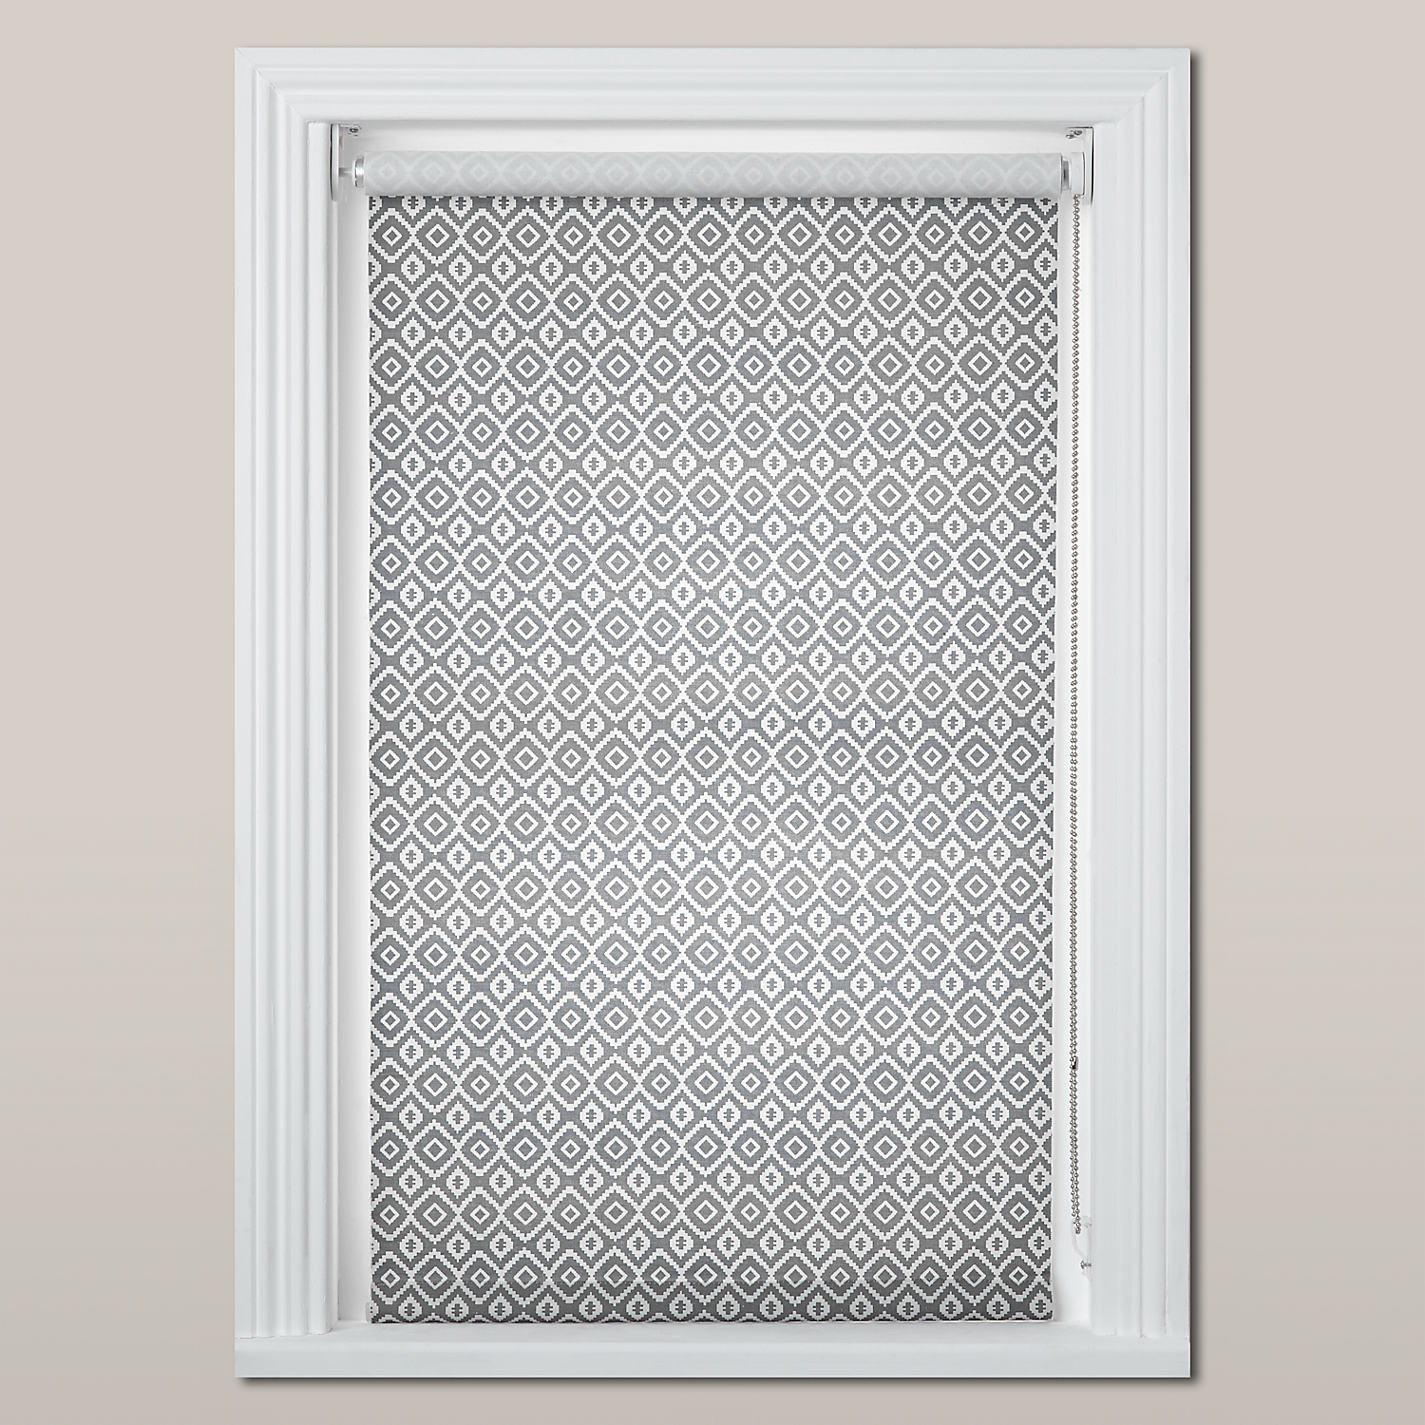 Cheap bathroom blinds uk - Buy John Lewis Nazca Daylight Roller Blind Grey Online At Johnlewis Com